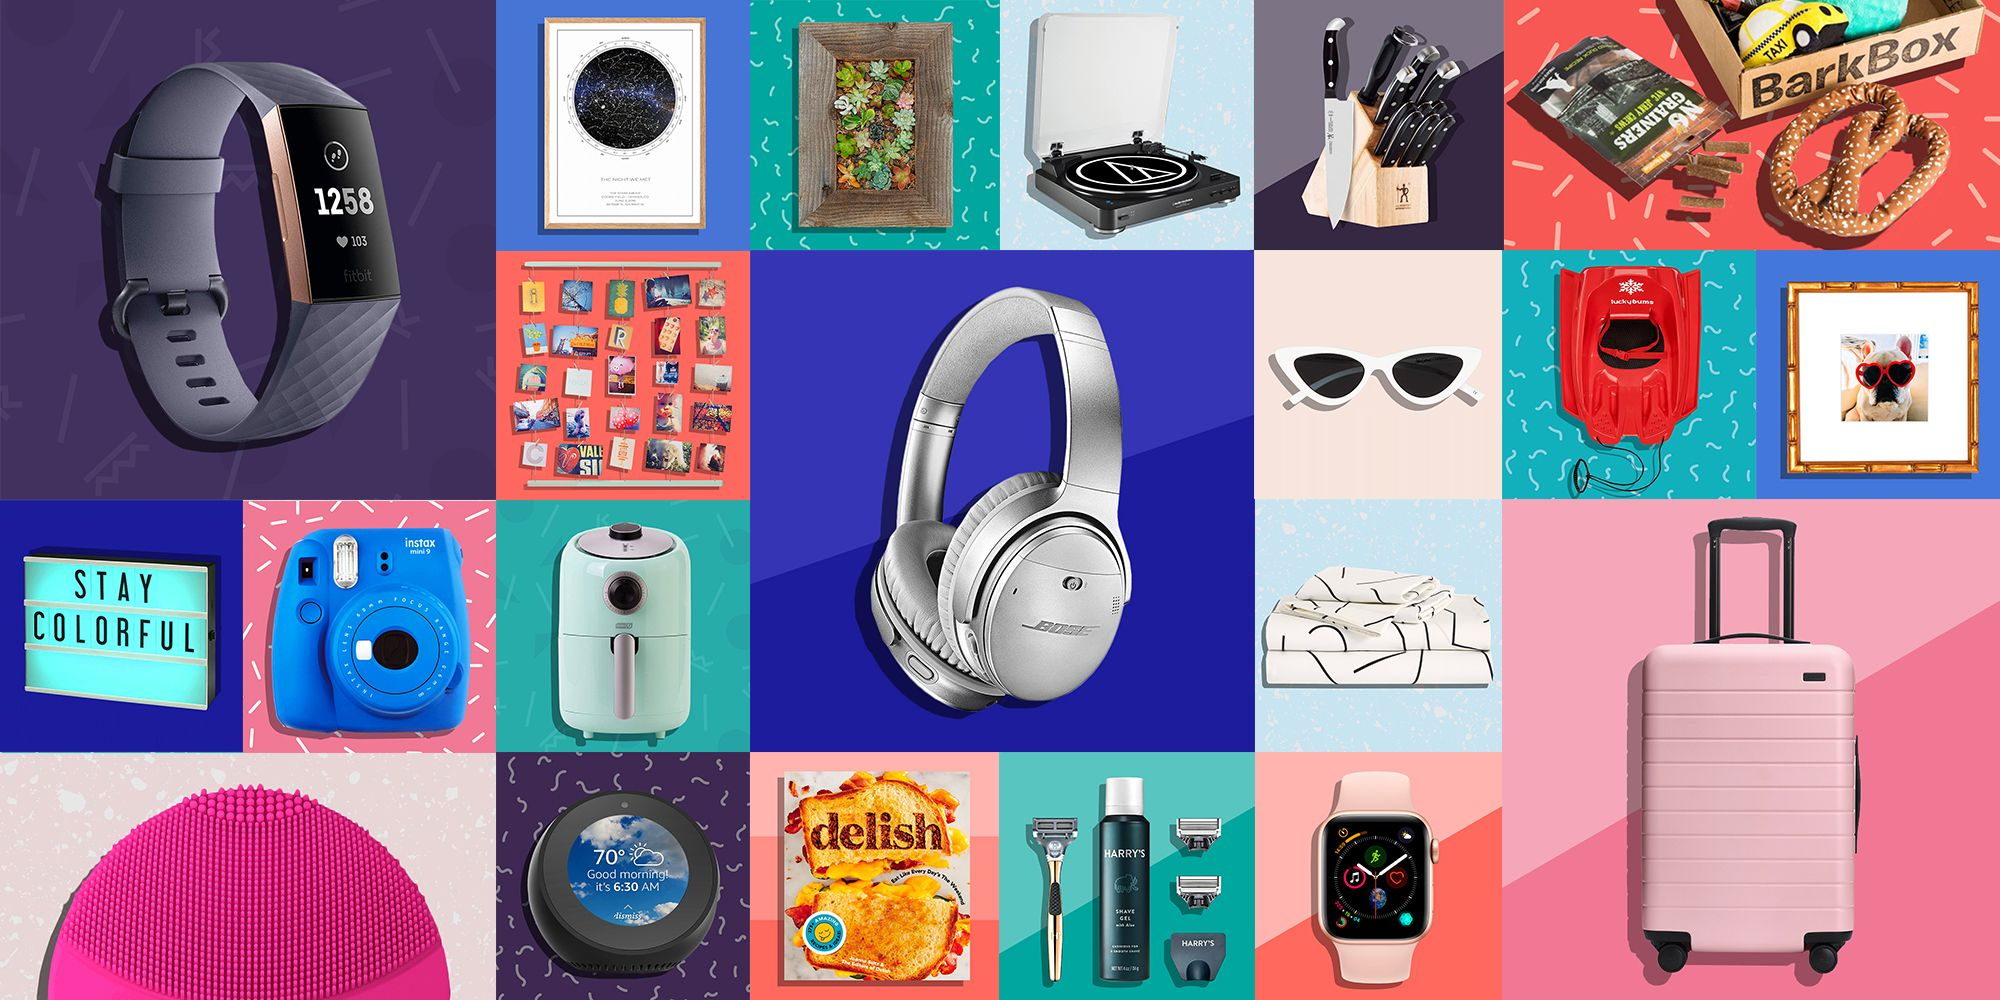 New apple products for christmas 2019 gift